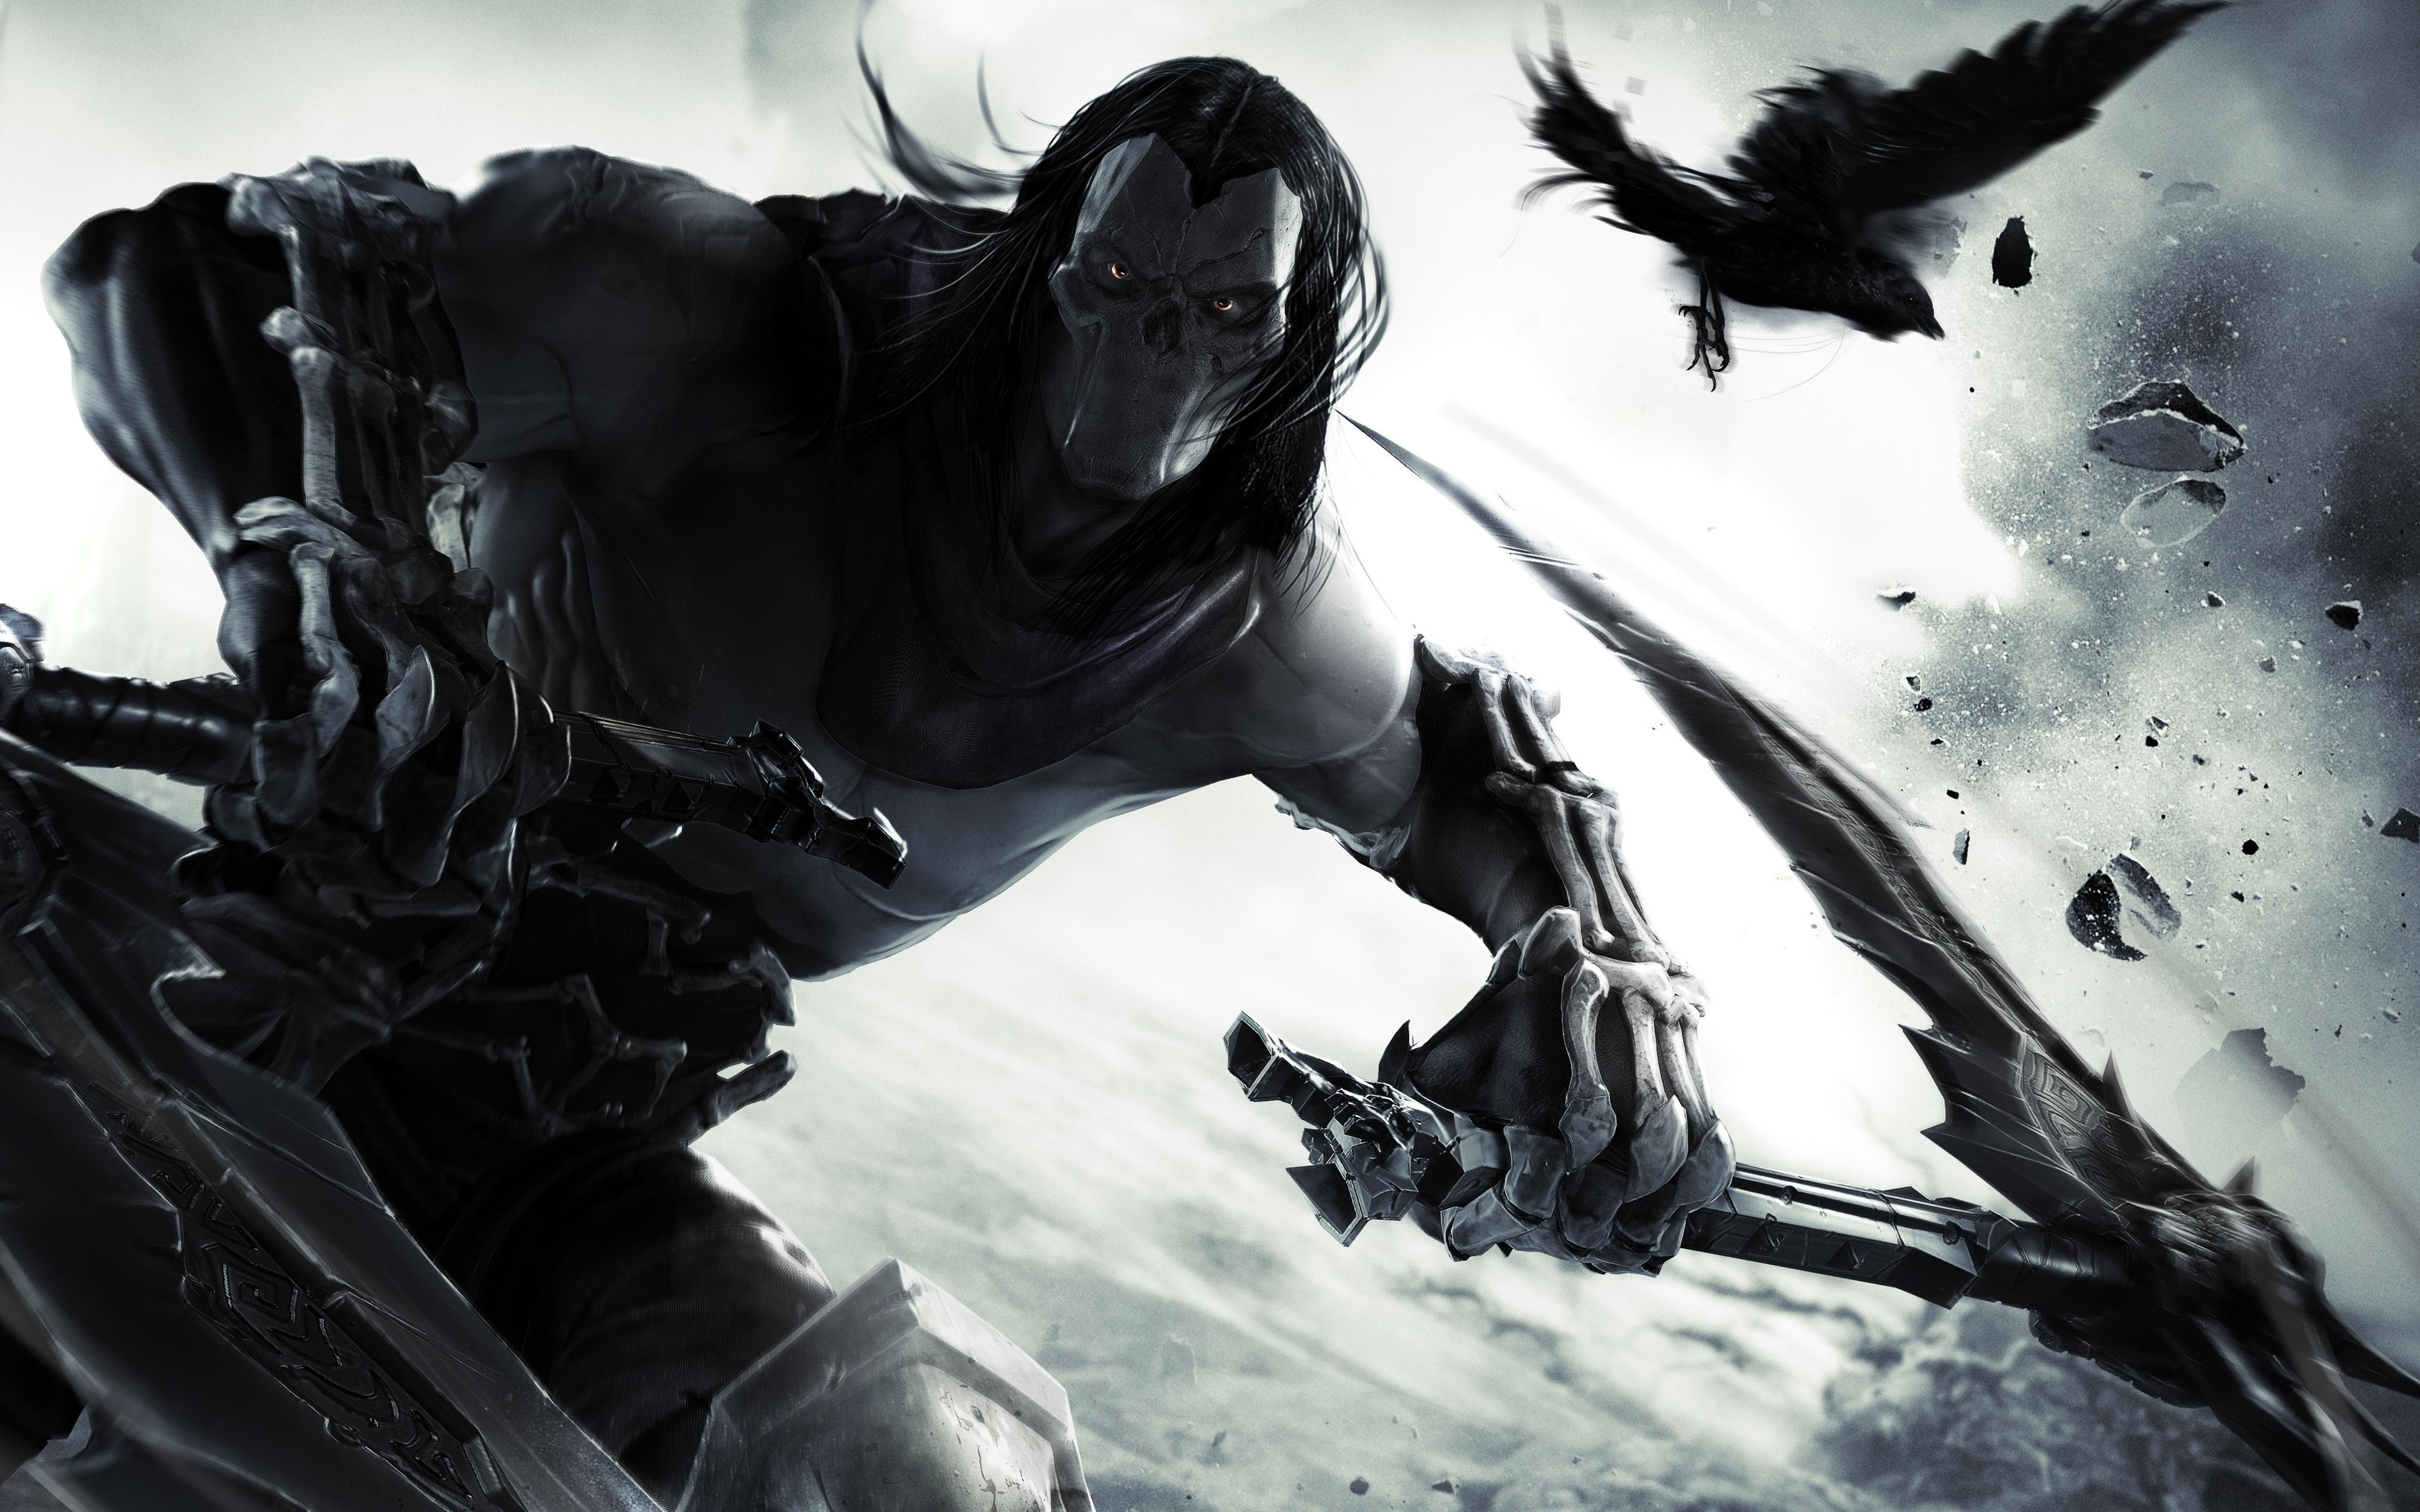 2012 Darksiders II 537.24 Kb